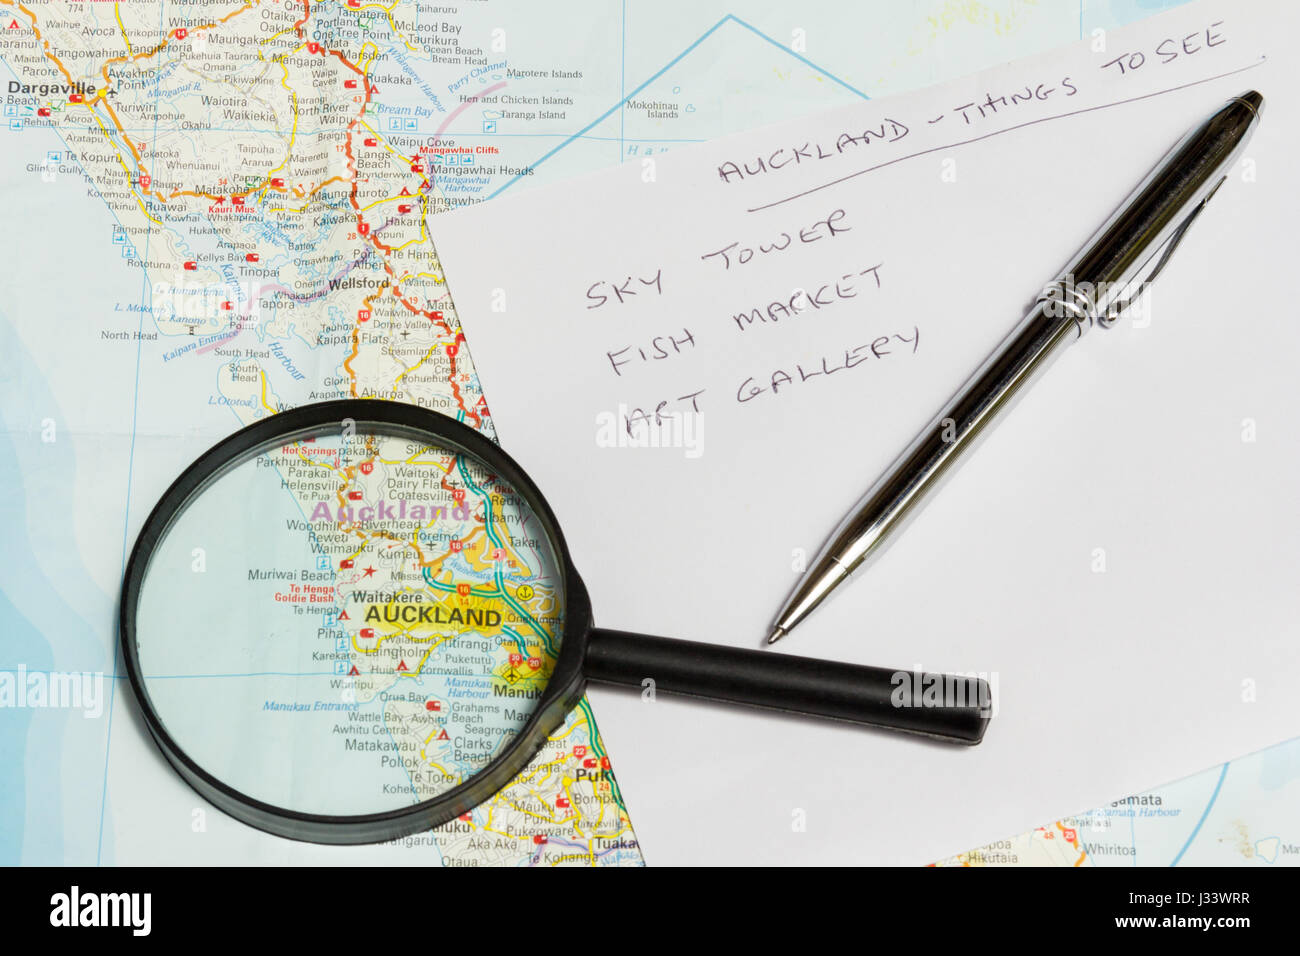 Map of New Zealand, list of things to see and with magnifying glass focussing on Auckland, North Island - Stock Image